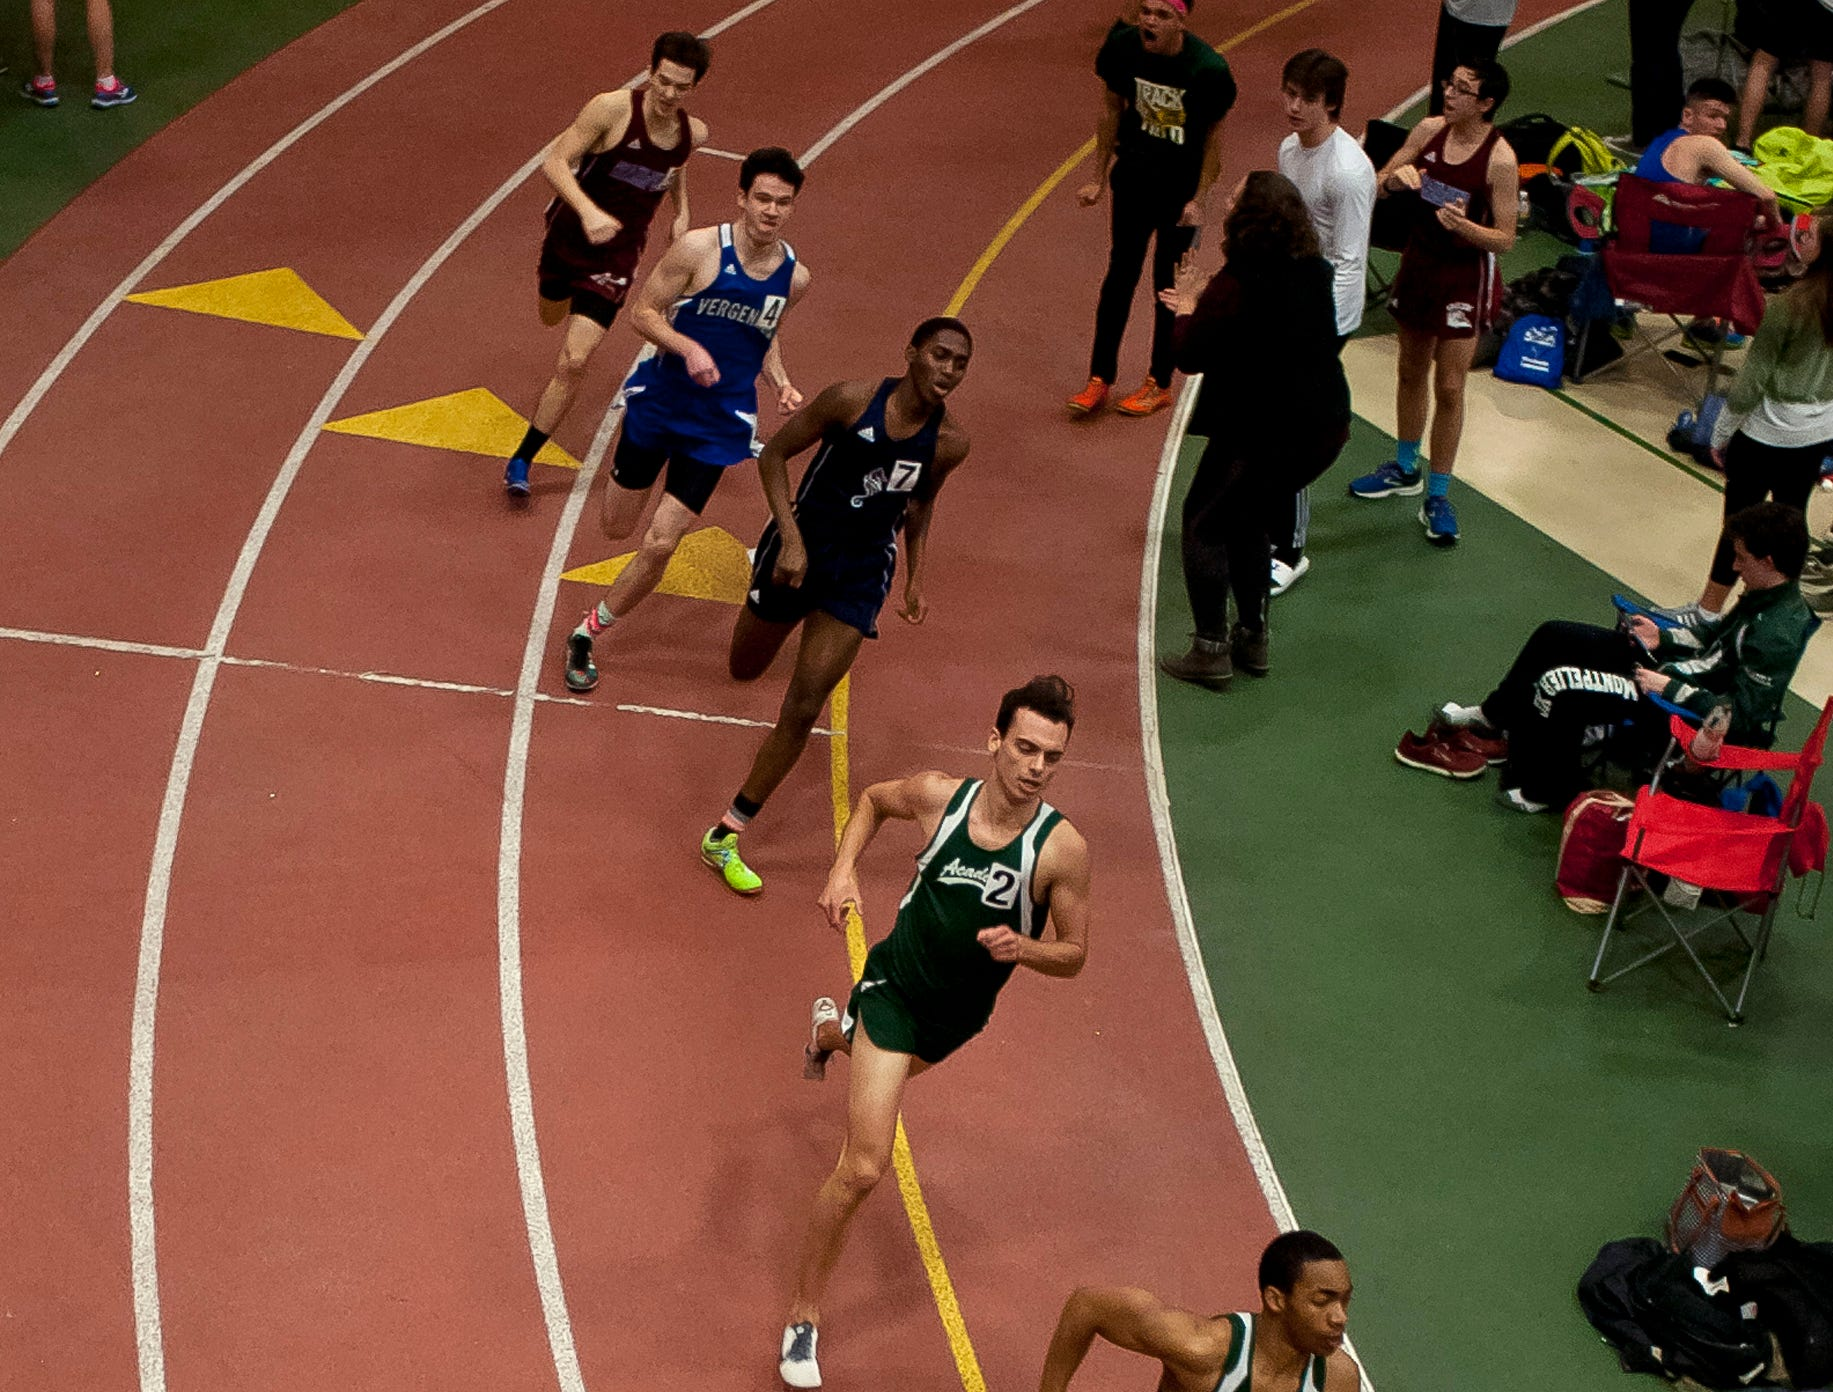 Runners round the first bend in the boys 600 meters at the high school indoor track state championships at the University of Vermont on Saturday.